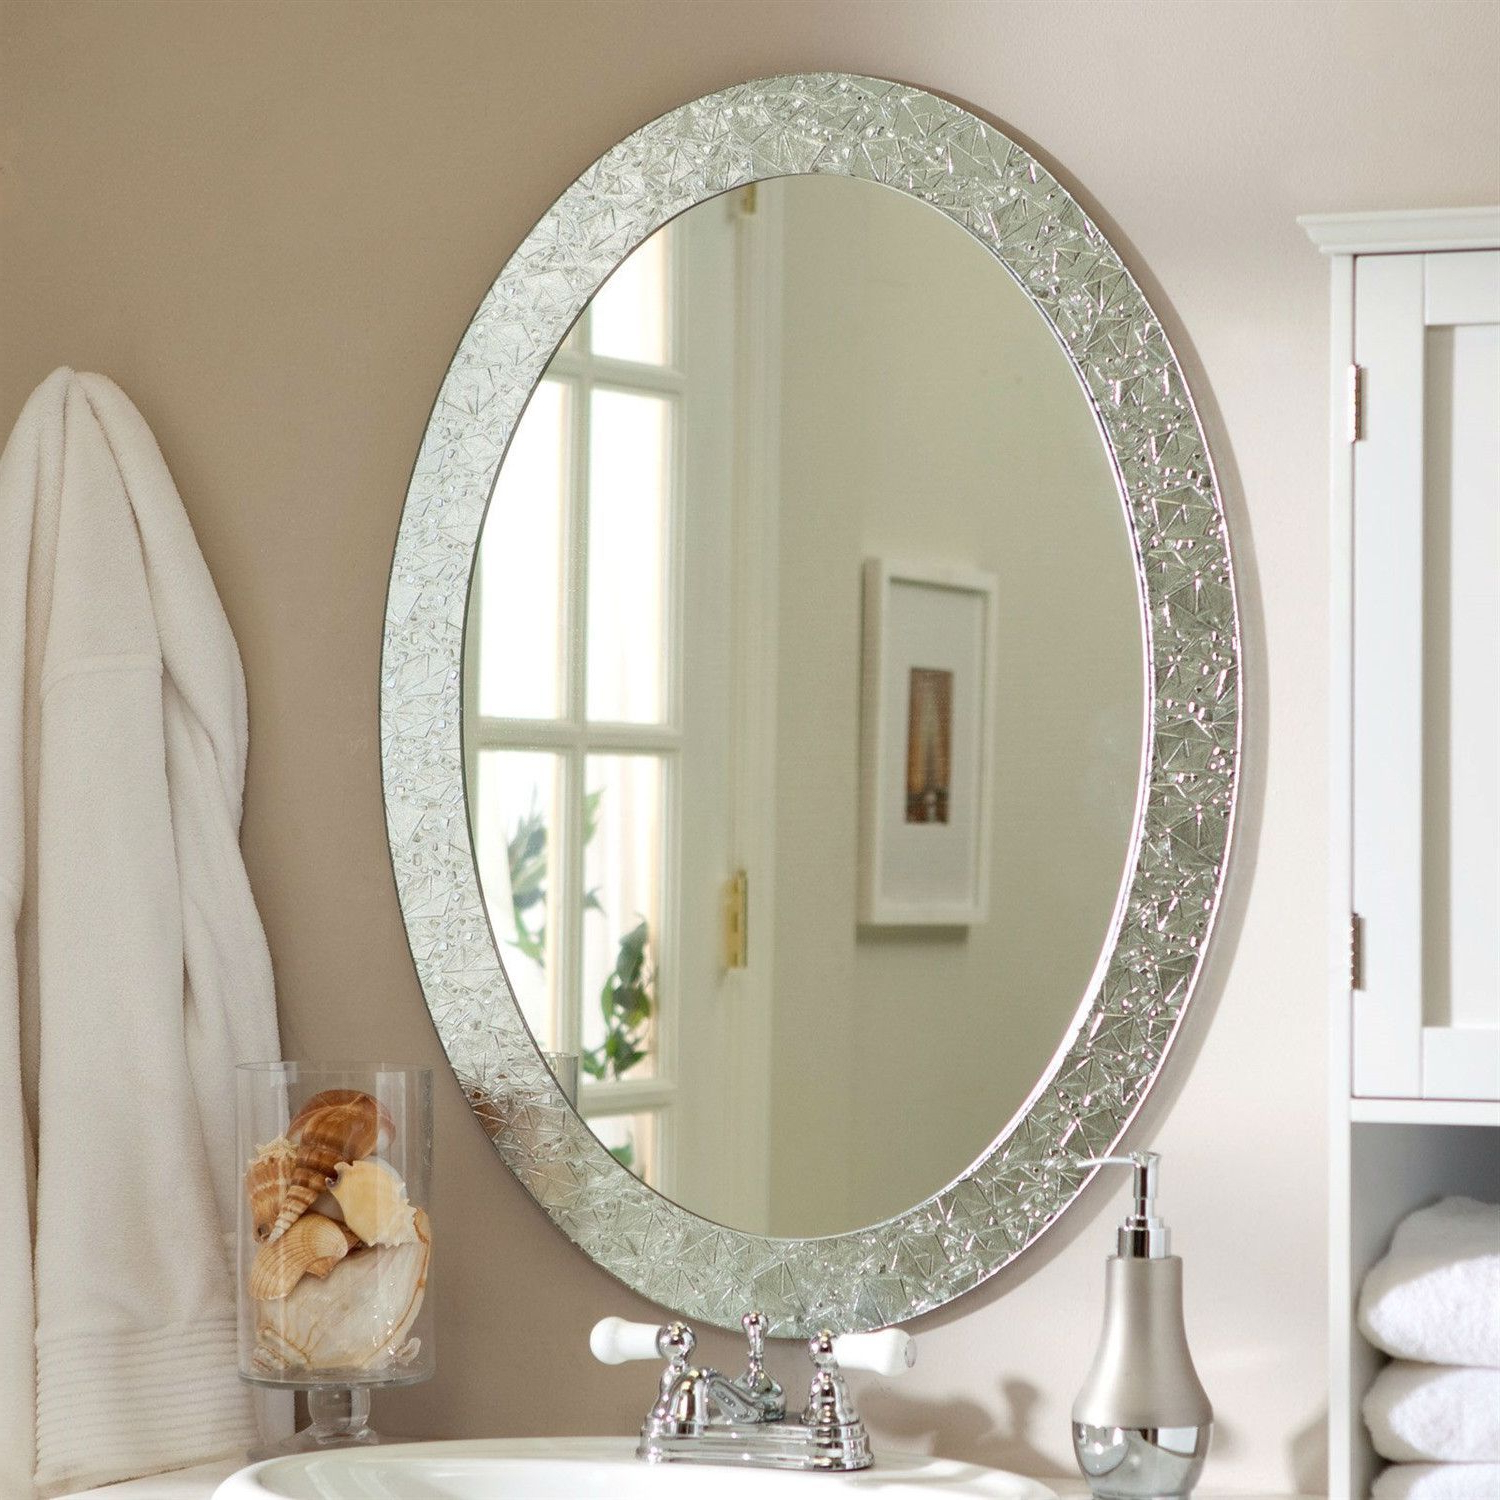 2019 Oval Frame Less Bathroom Vanity Wall Mirror With Elegant Crystal Inside Small Oval Wall Mirrors (Gallery 7 of 20)